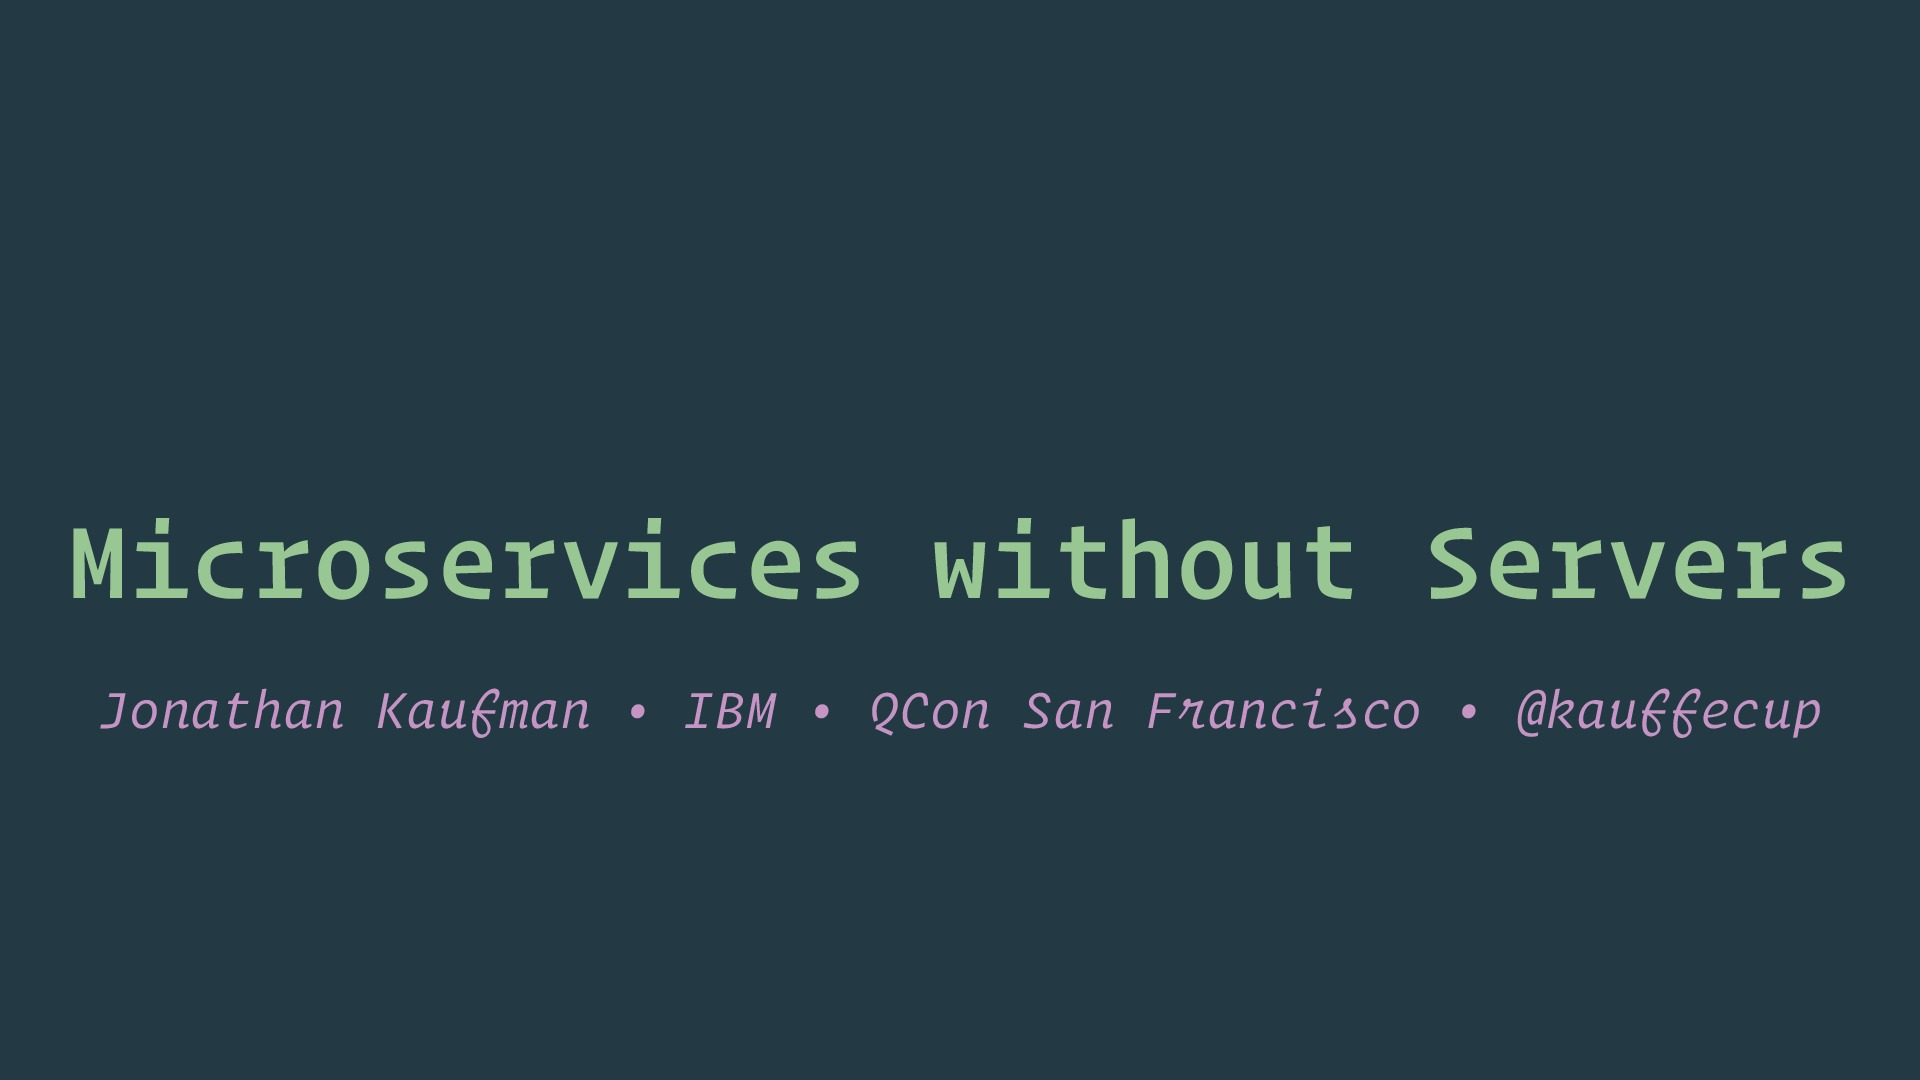 Microservices without Servers